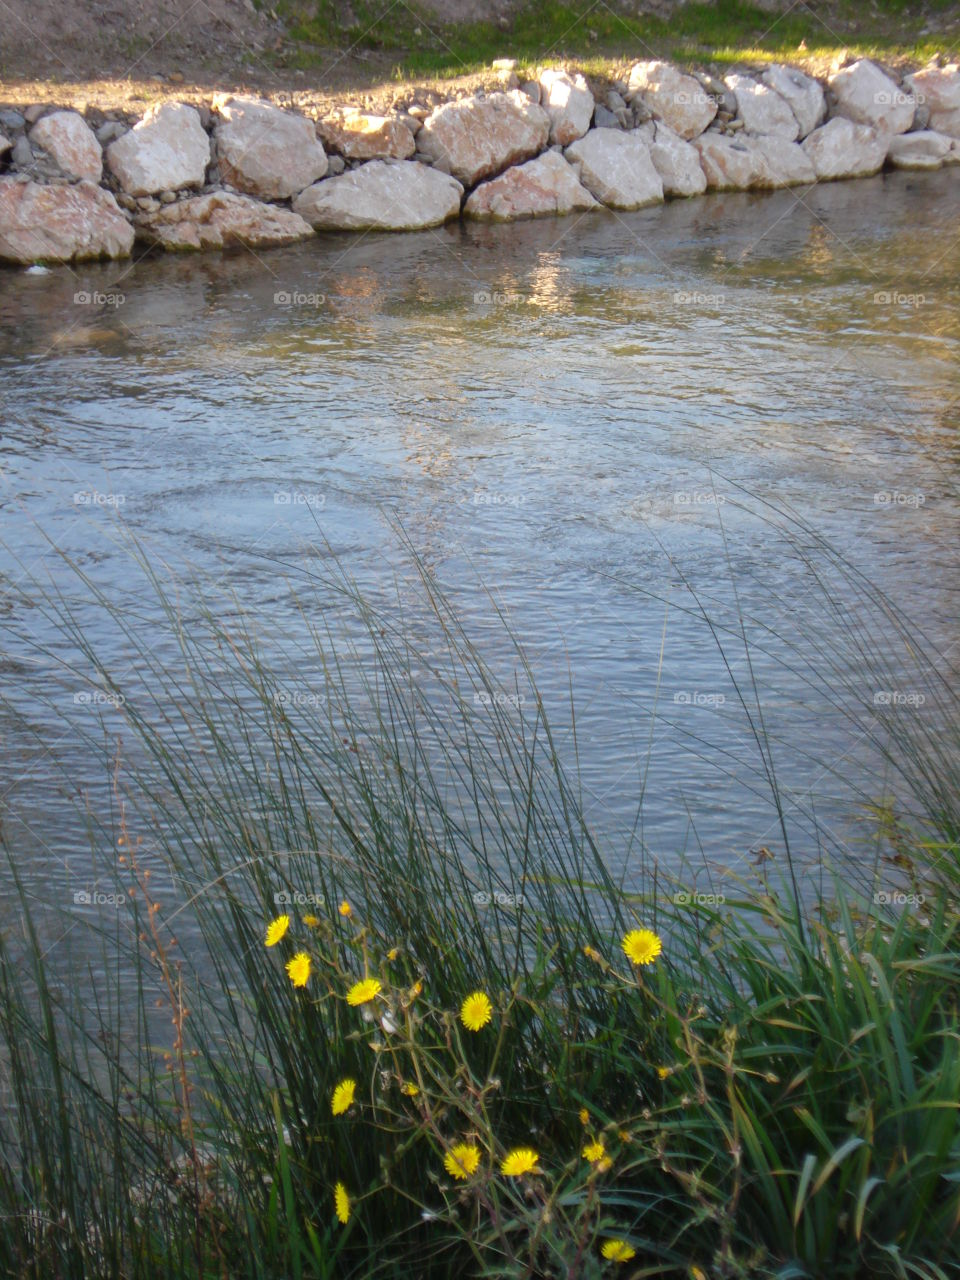 The Yellow Flowers by the River